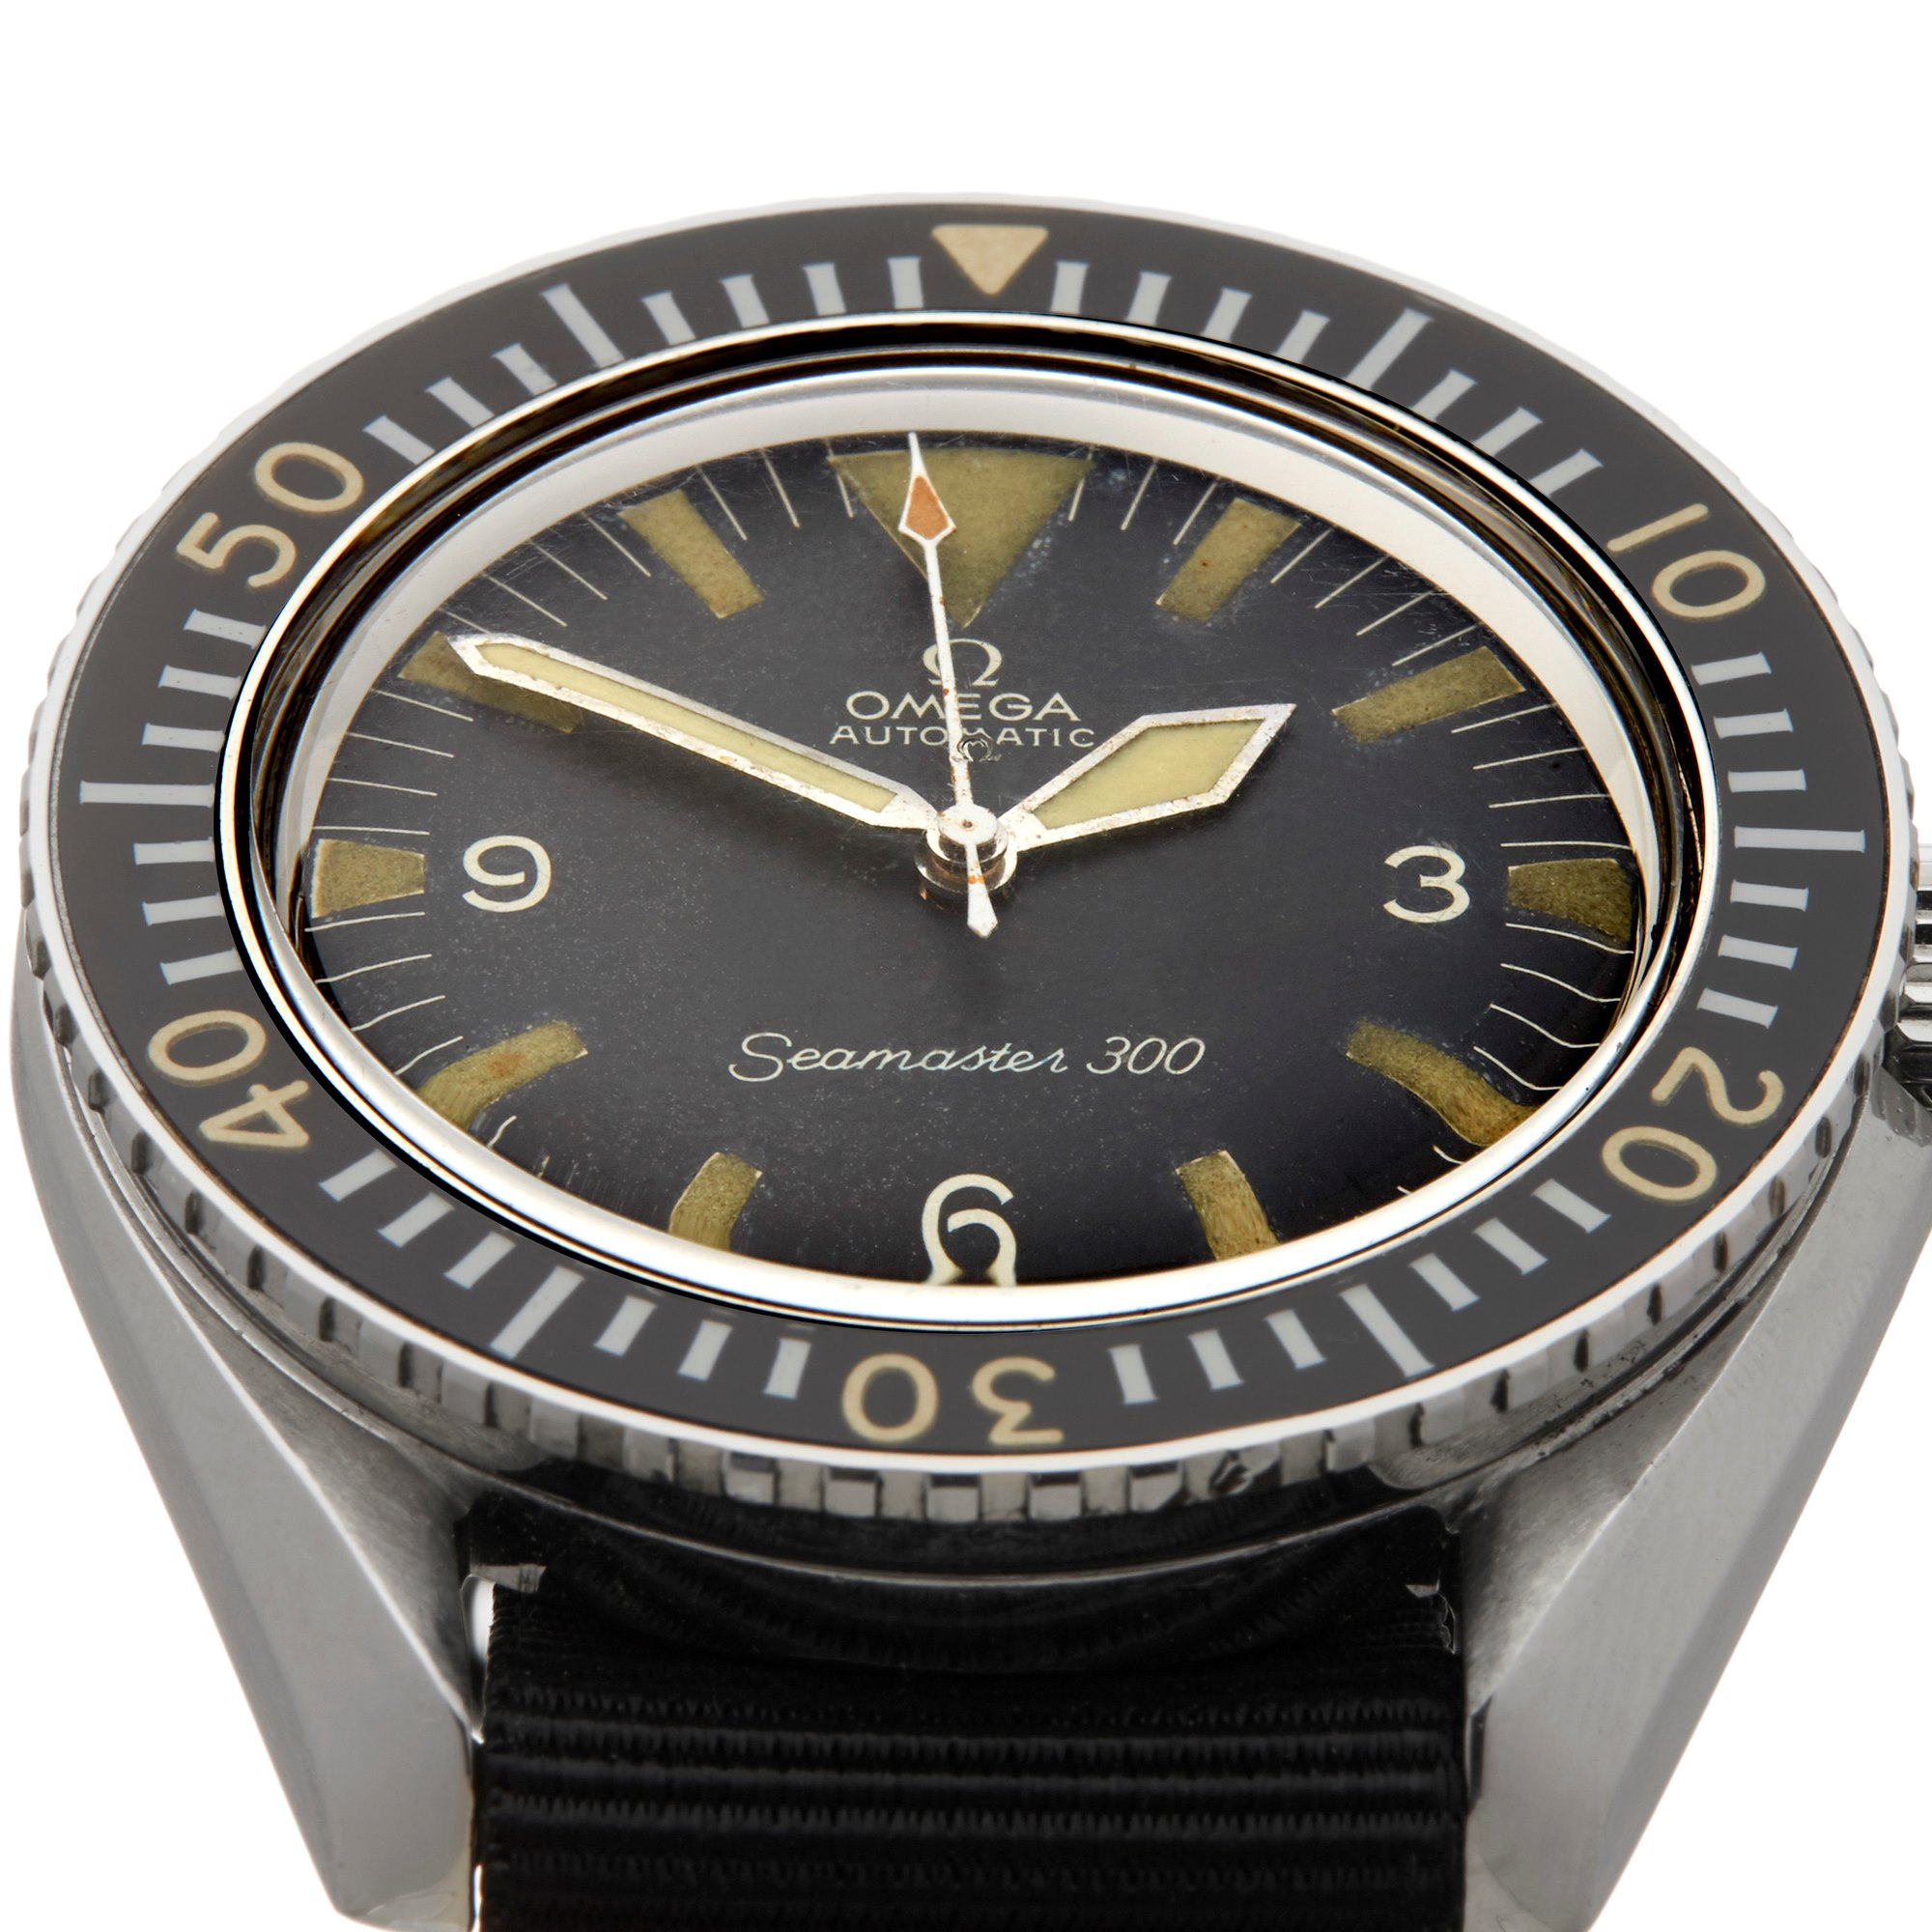 Omega Seamaster 300 Military Stainless Steel - ST 165.024 Stainless Steel ST 165.024